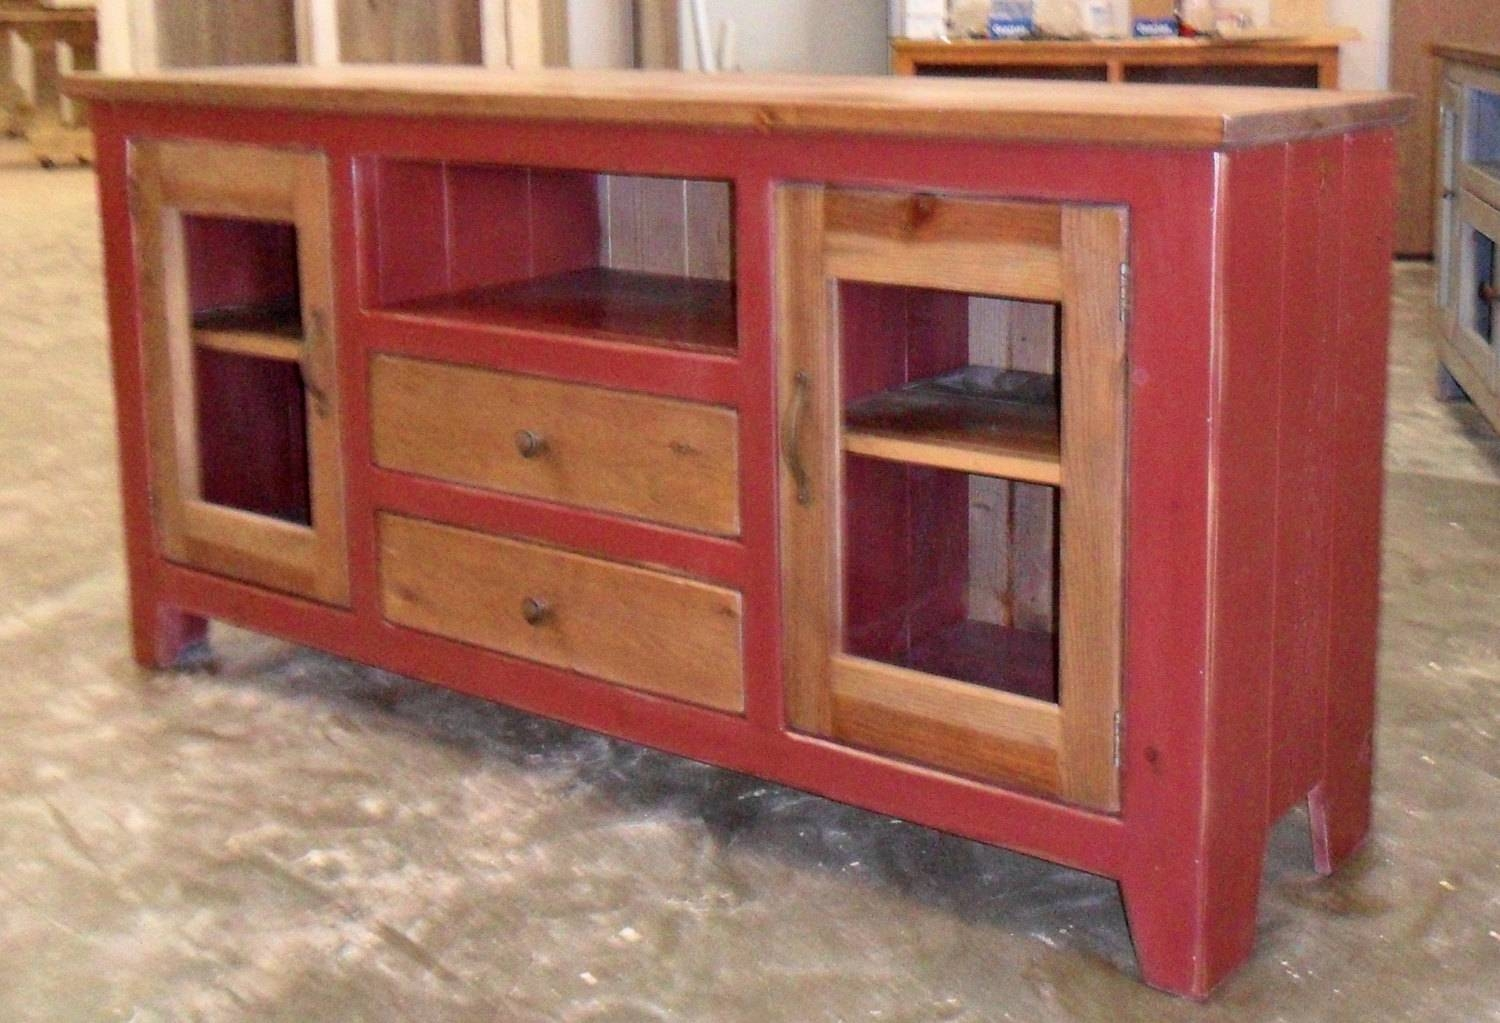 Media Cabinet Reclaimed Wood Tv Stand Rustic Vintage With Regard To Red Tv Cabinets (View 10 of 15)